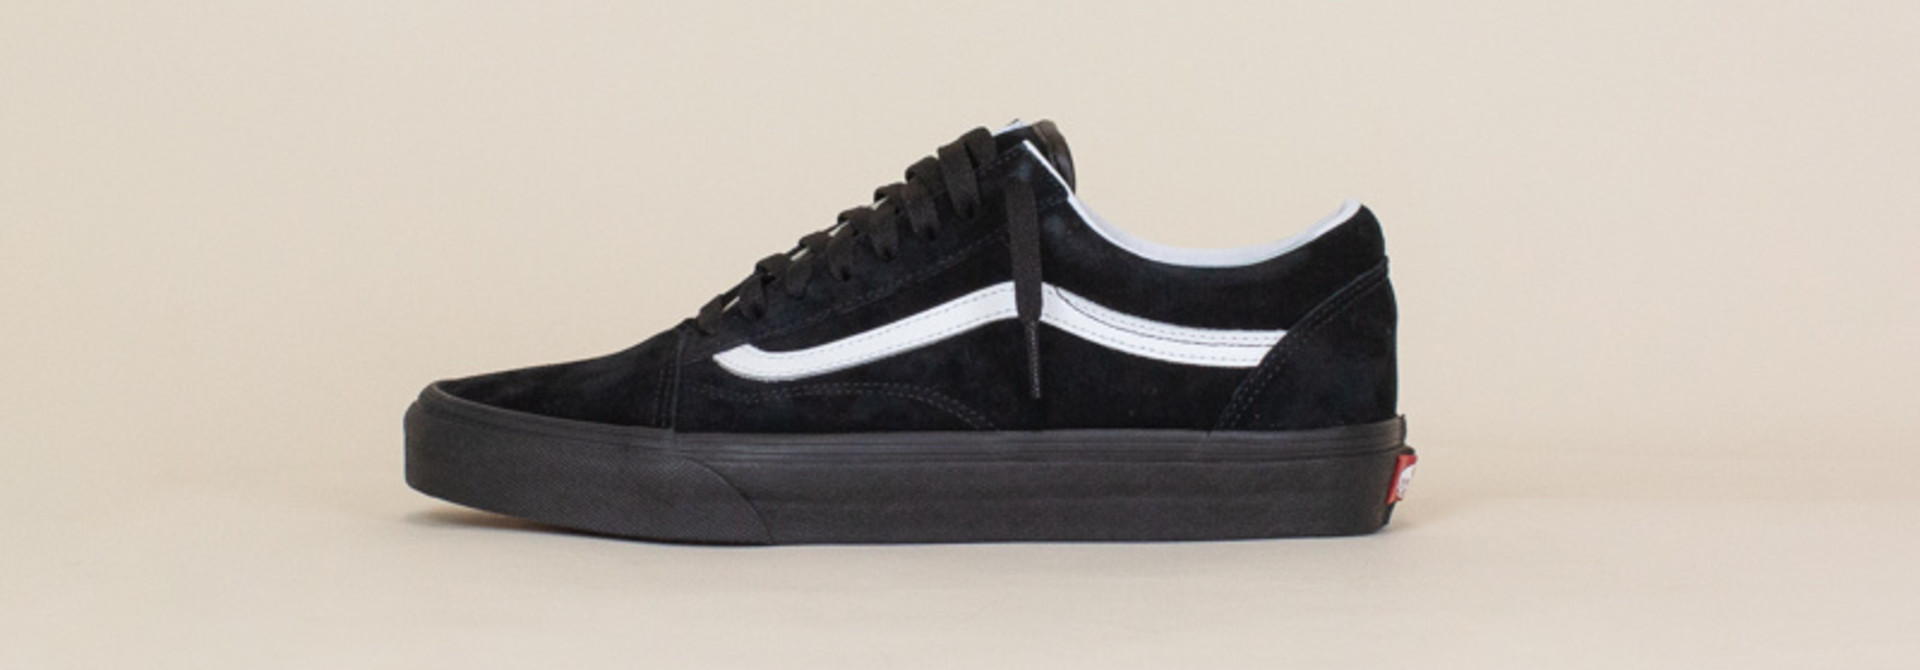 Vans Old Skool Pig Suede - Black/White